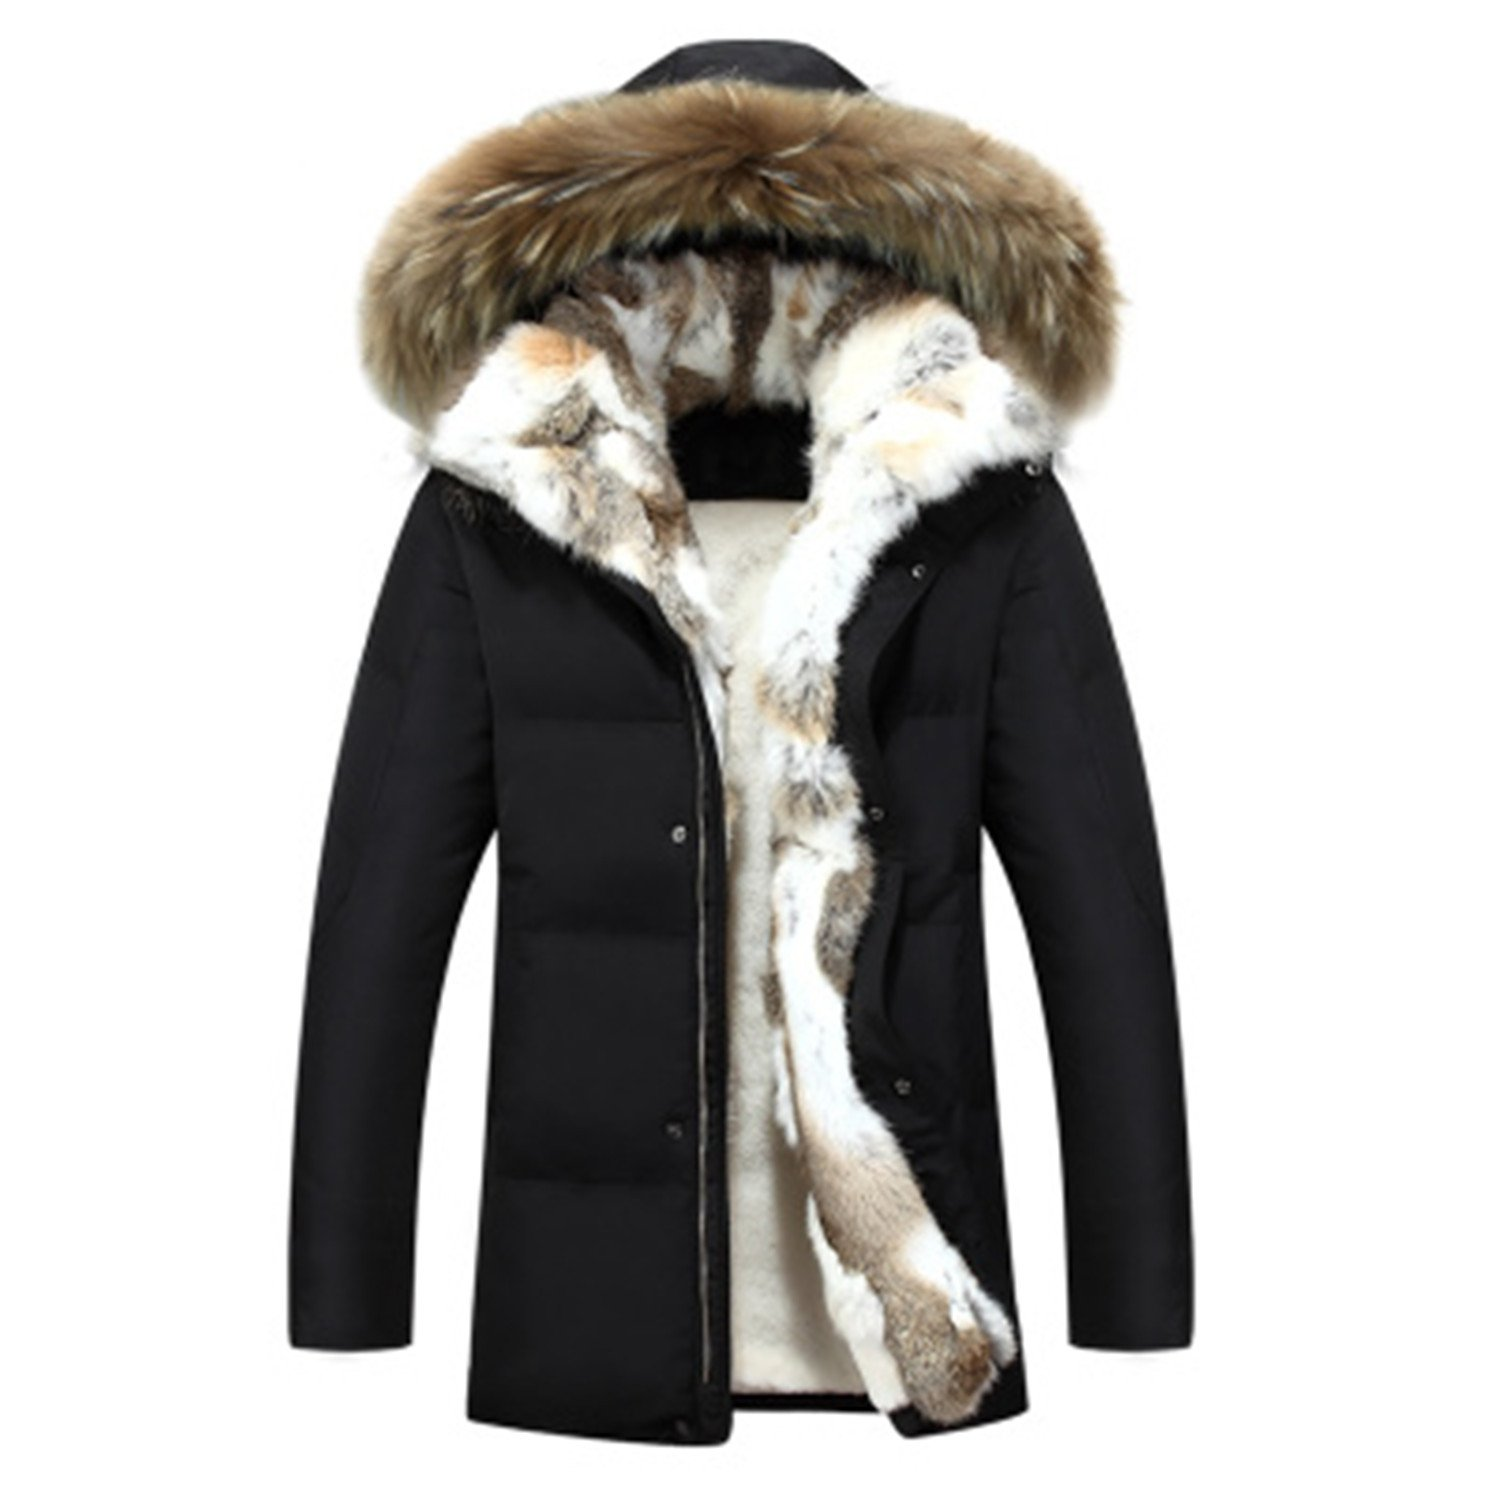 Also Easy Men's and Women's Leisure Down Jacket Thick Hood Detached Warm Waterproof Big Raccoon Fur Collar For -30 degrees Black M